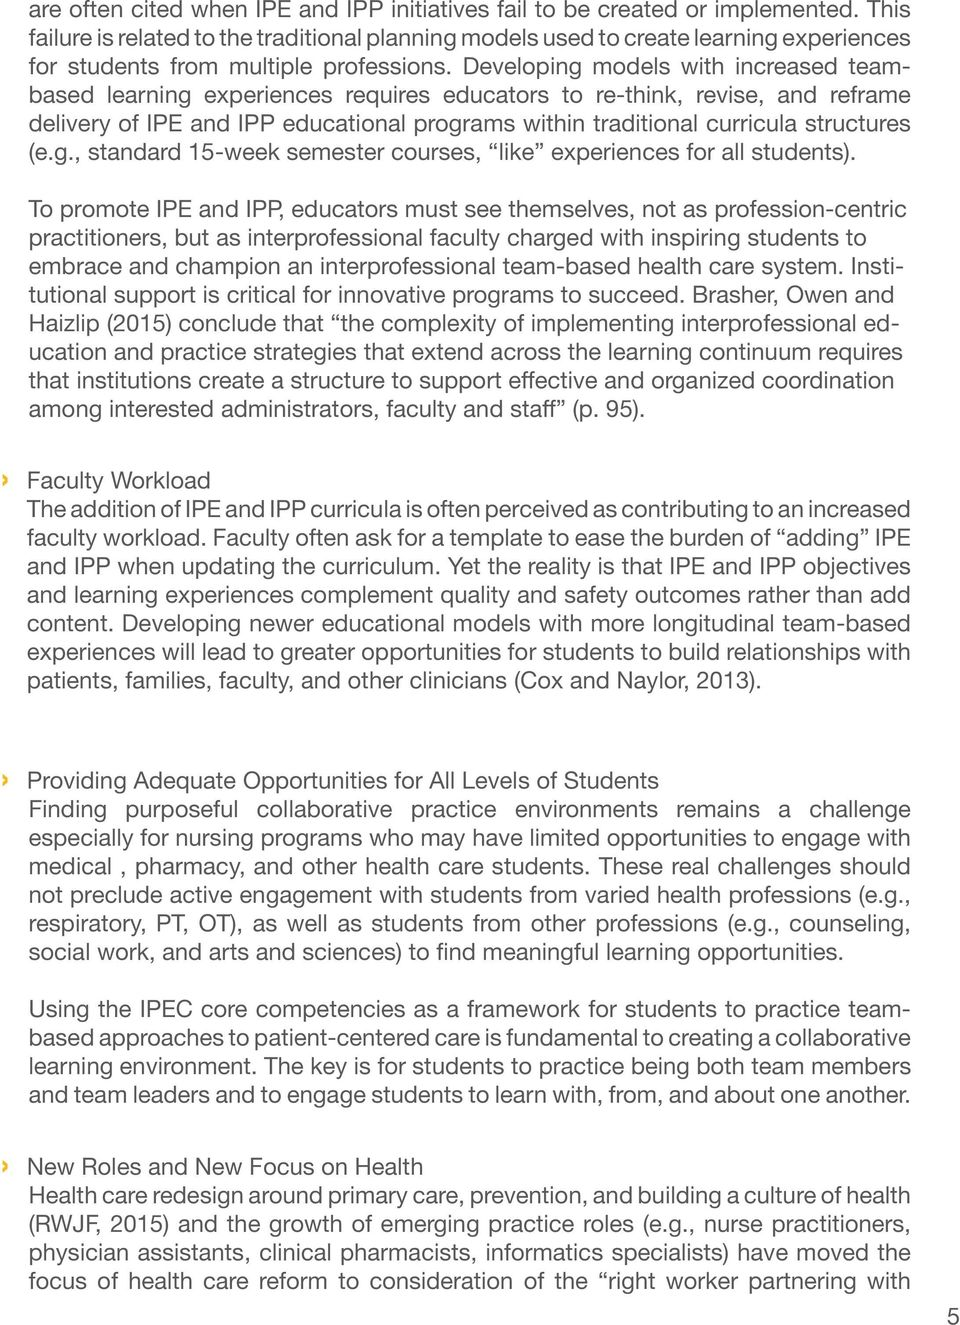 Developing models with increased teambased learning experiences requires educators to re-think, revise, and reframe delivery of IPE and IPP educational programs within traditional curricula